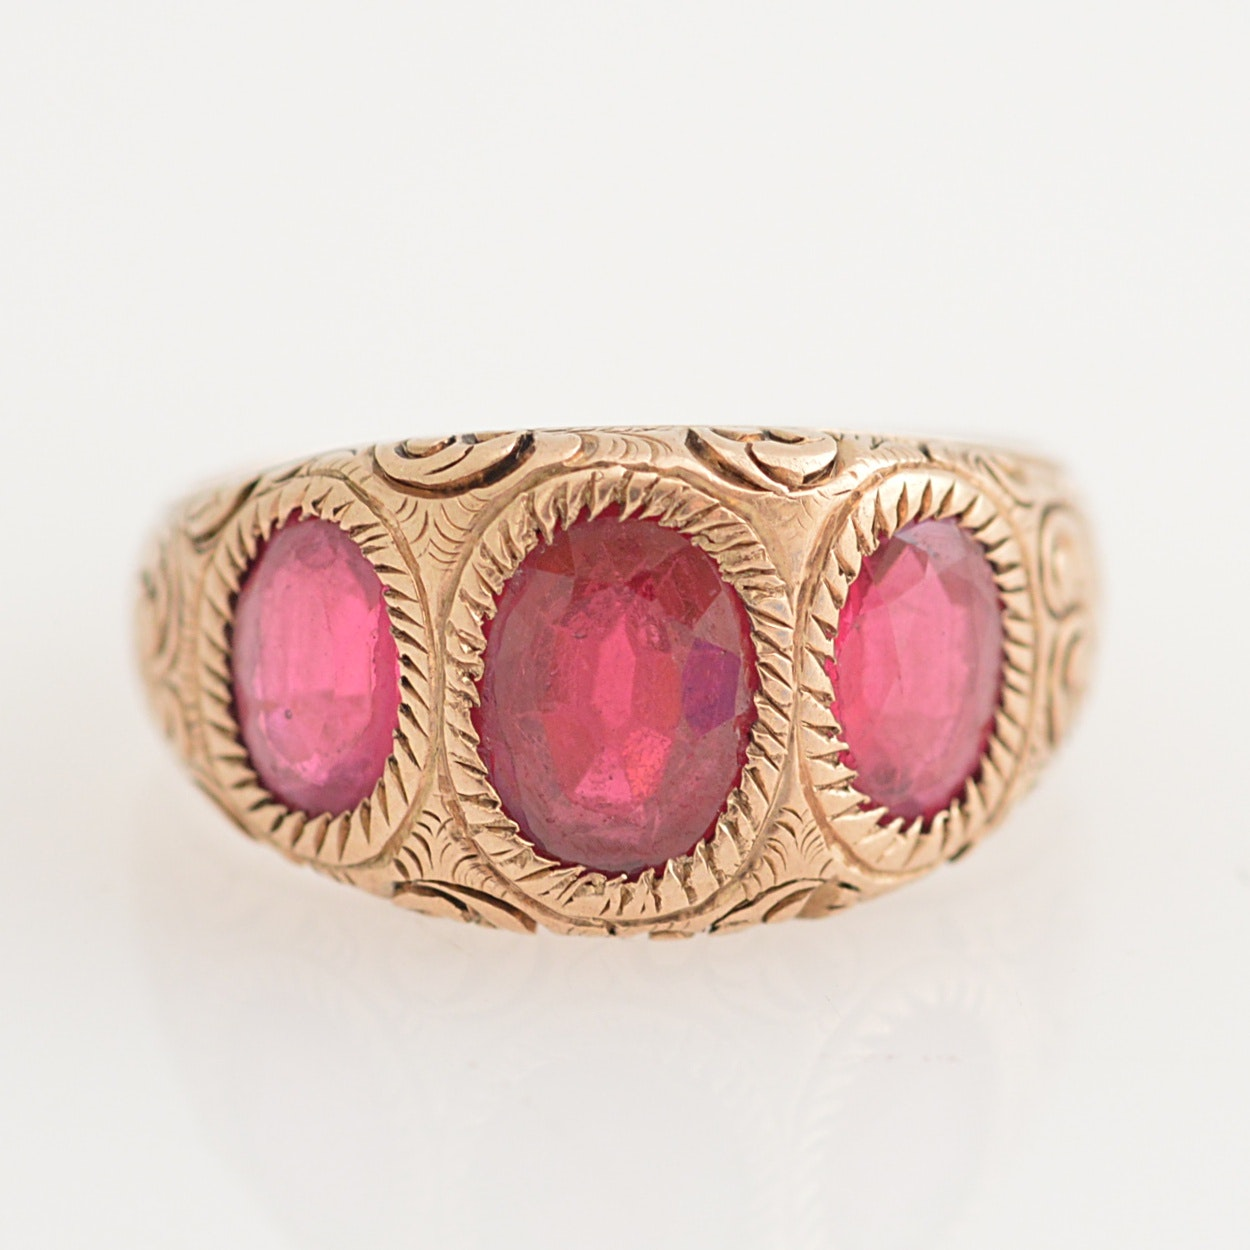 Vintage 10K Yellow Gold, Garnet and Glass Doublet Ring